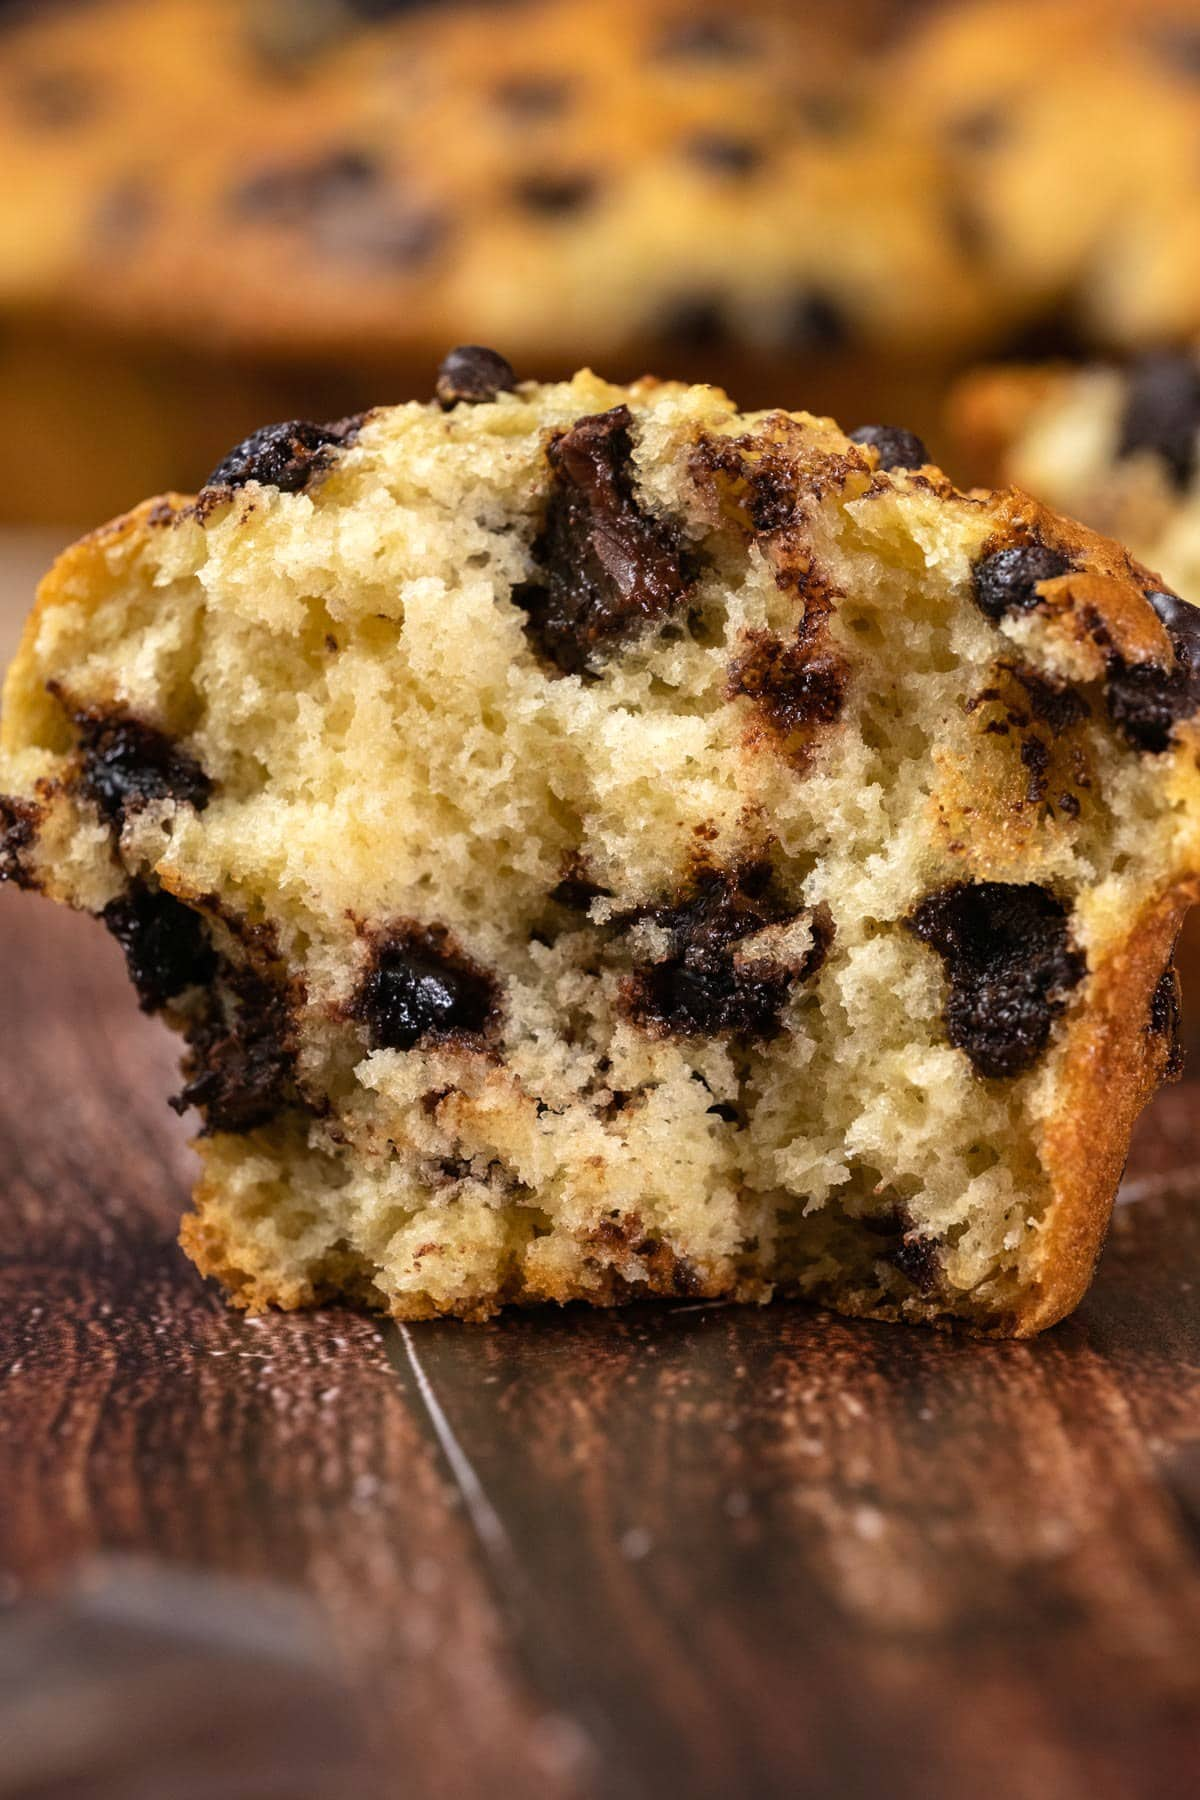 Chocolate chip muffin broken in half.